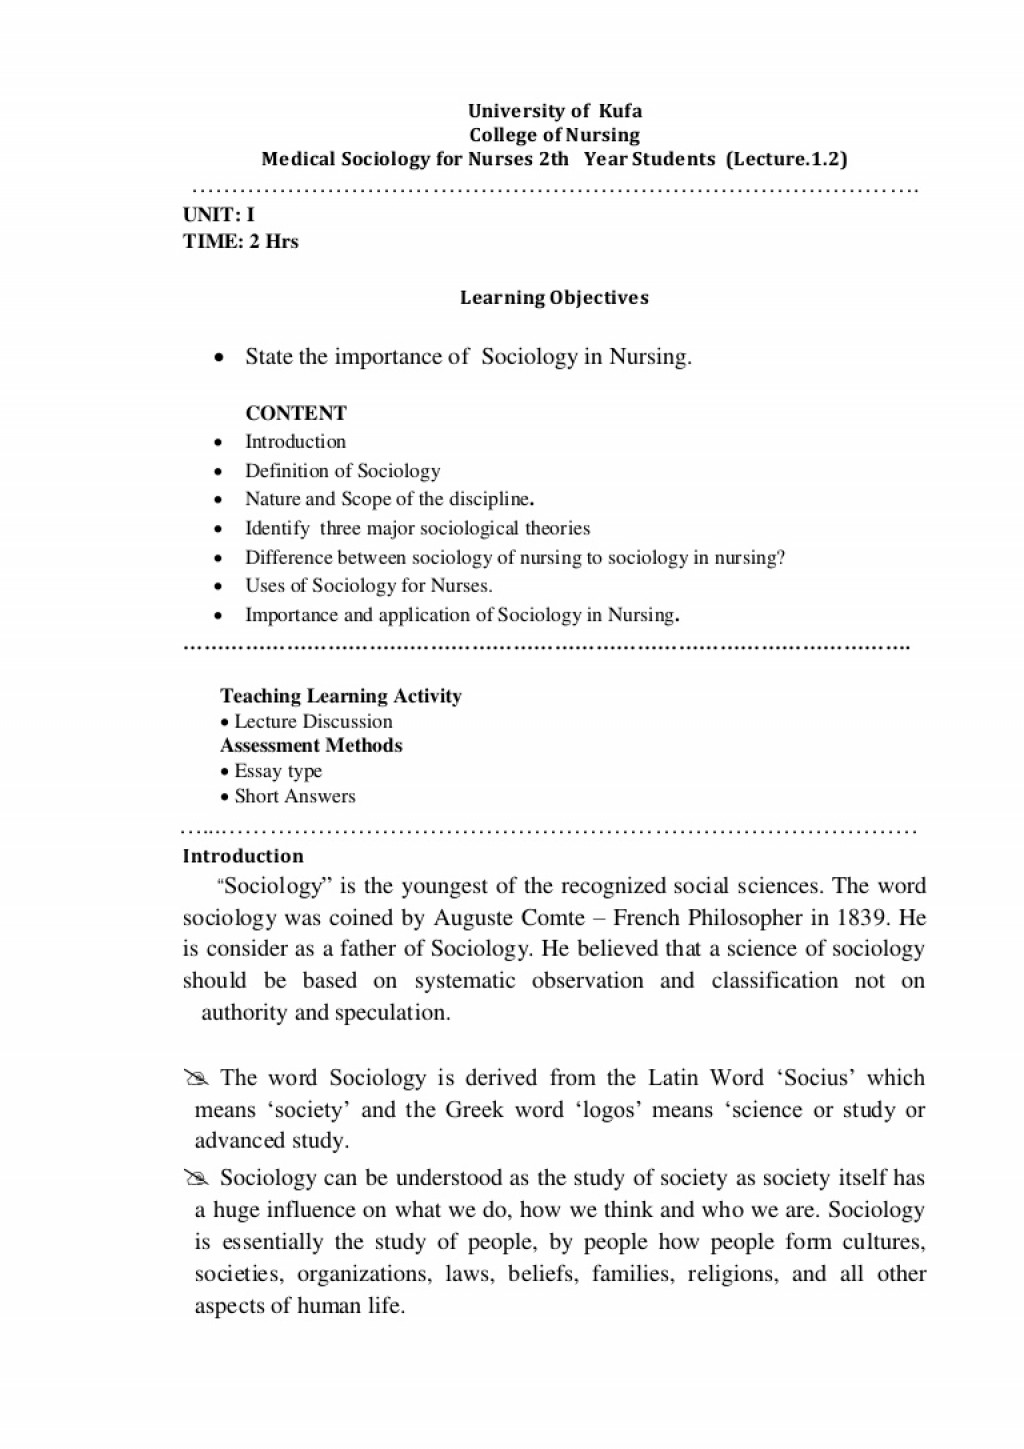 005 Essay Example Lecture1introdicationmedicalsociologyfornursing Conversion Gate01 Thumbnail On Importance Of Social Rare Science Large